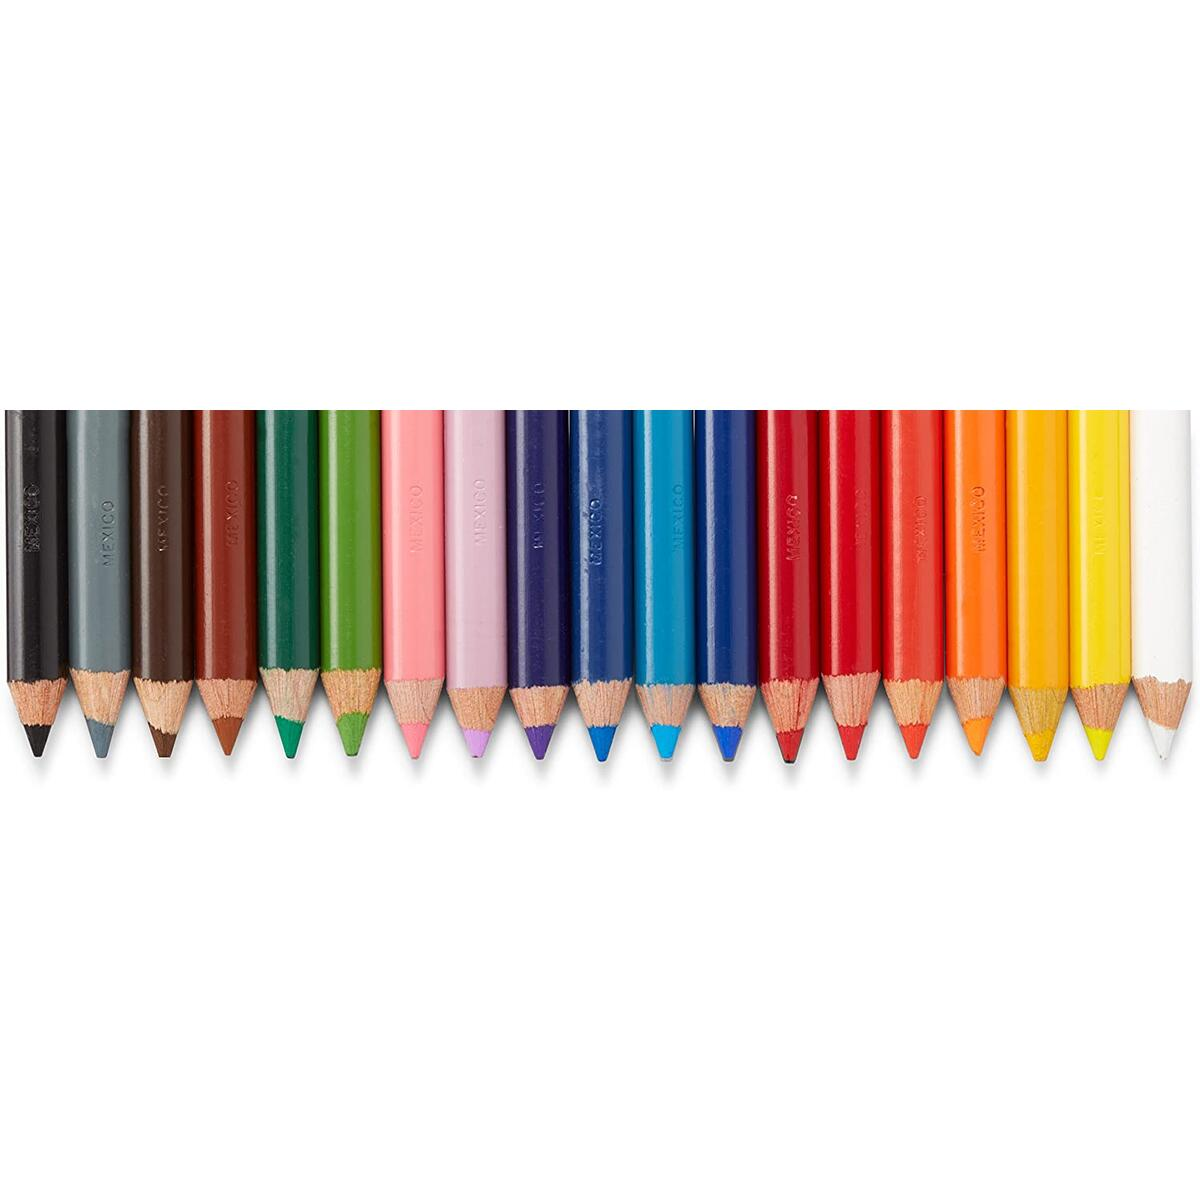 Prismacolor 3598T Premier Soft Core Colored Pencils, Soft, Thick Core Pencils for a Smooth Color Laydown, Pigments, Assorted Colors, Pack of 48